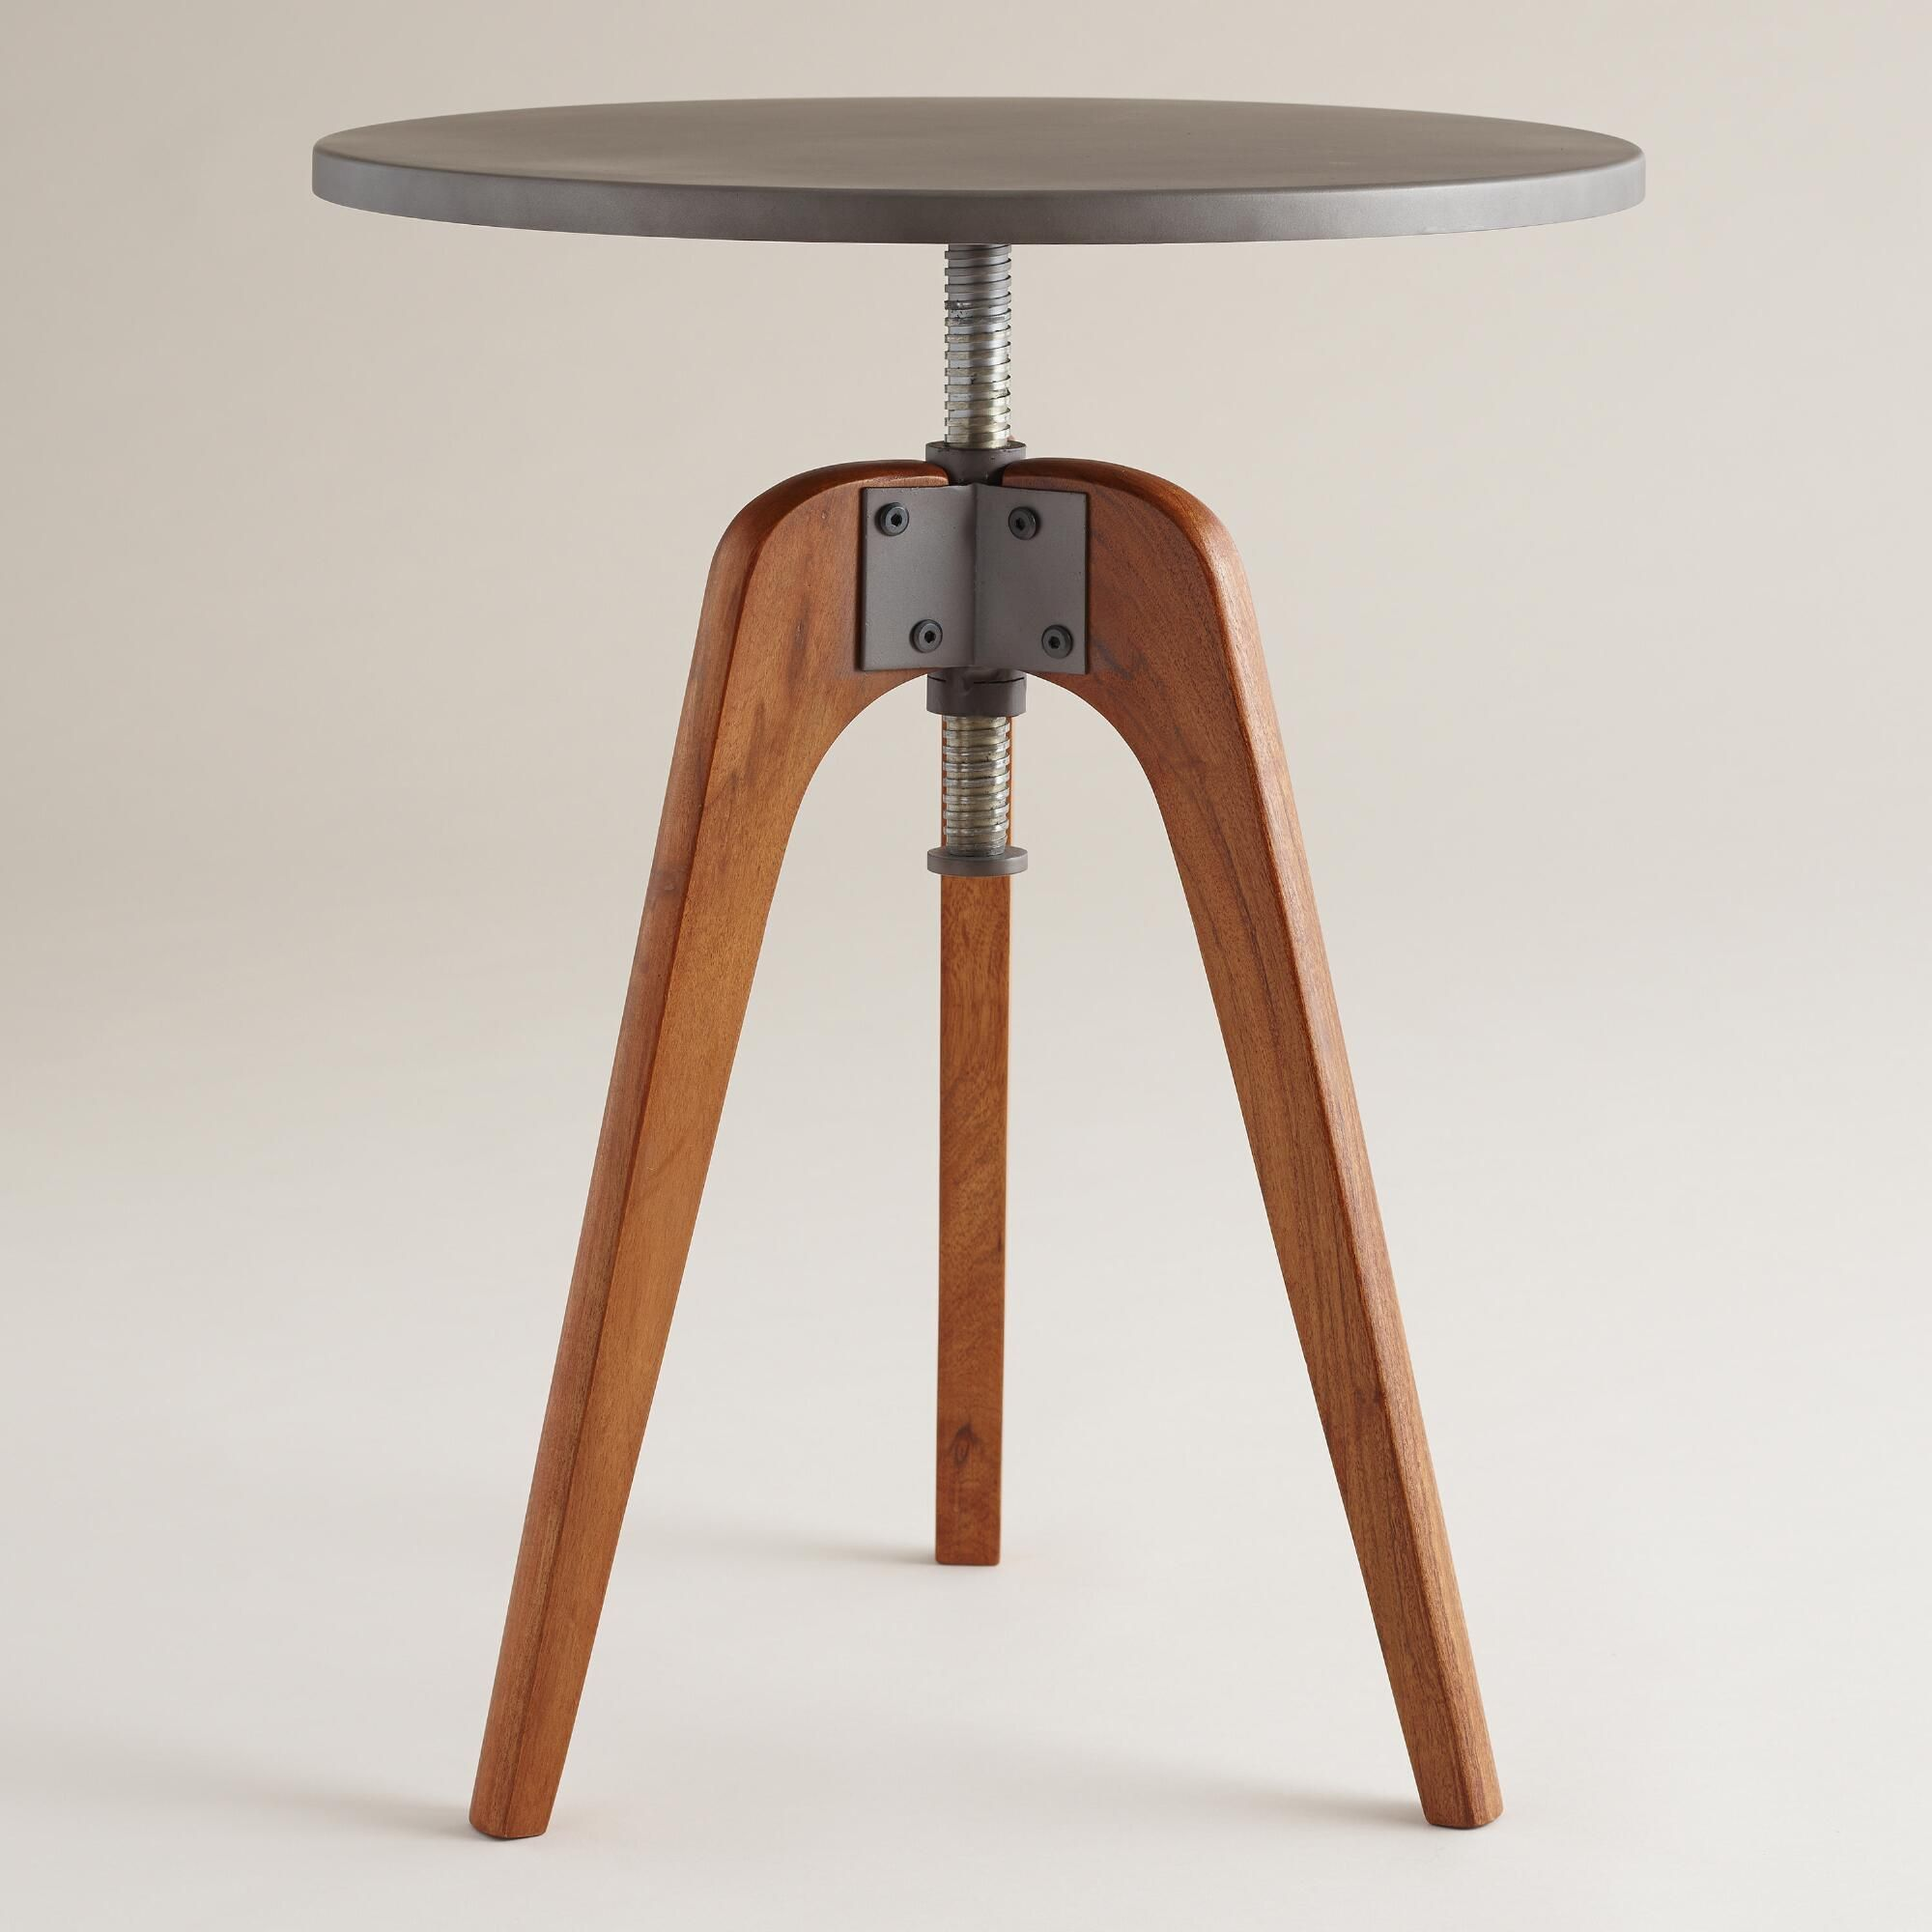 A mix of industrial and mid century  our accent table features an  adjustable metal. Round Eslynn Swivel Accent Table   Feelings  Metals and Industrial